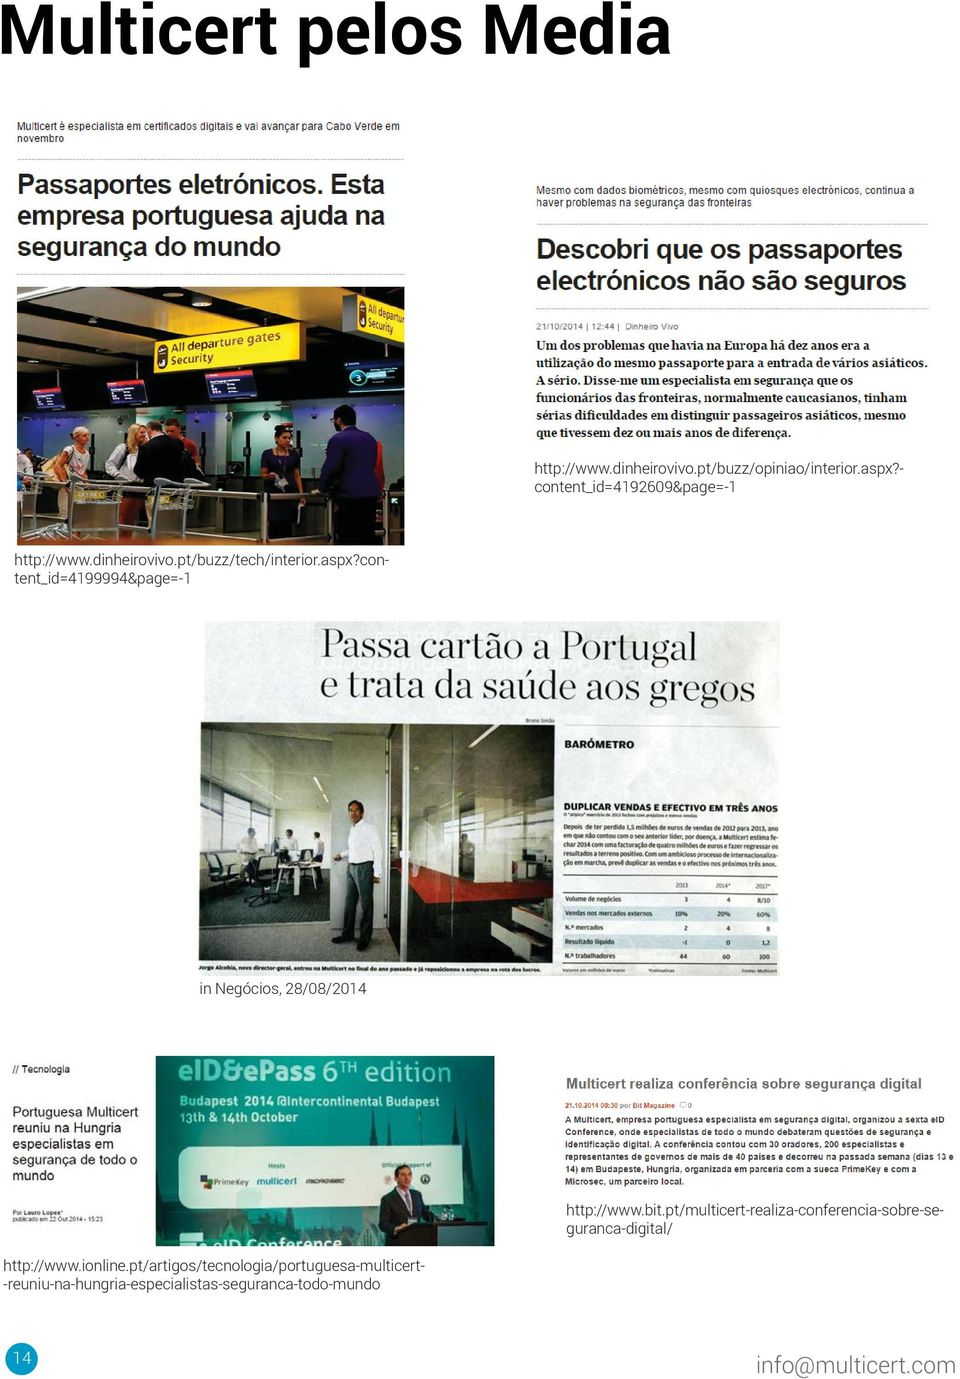 - content_id=4192609&page=-1 in Negócios, 28/08/2014 http://www.bit.